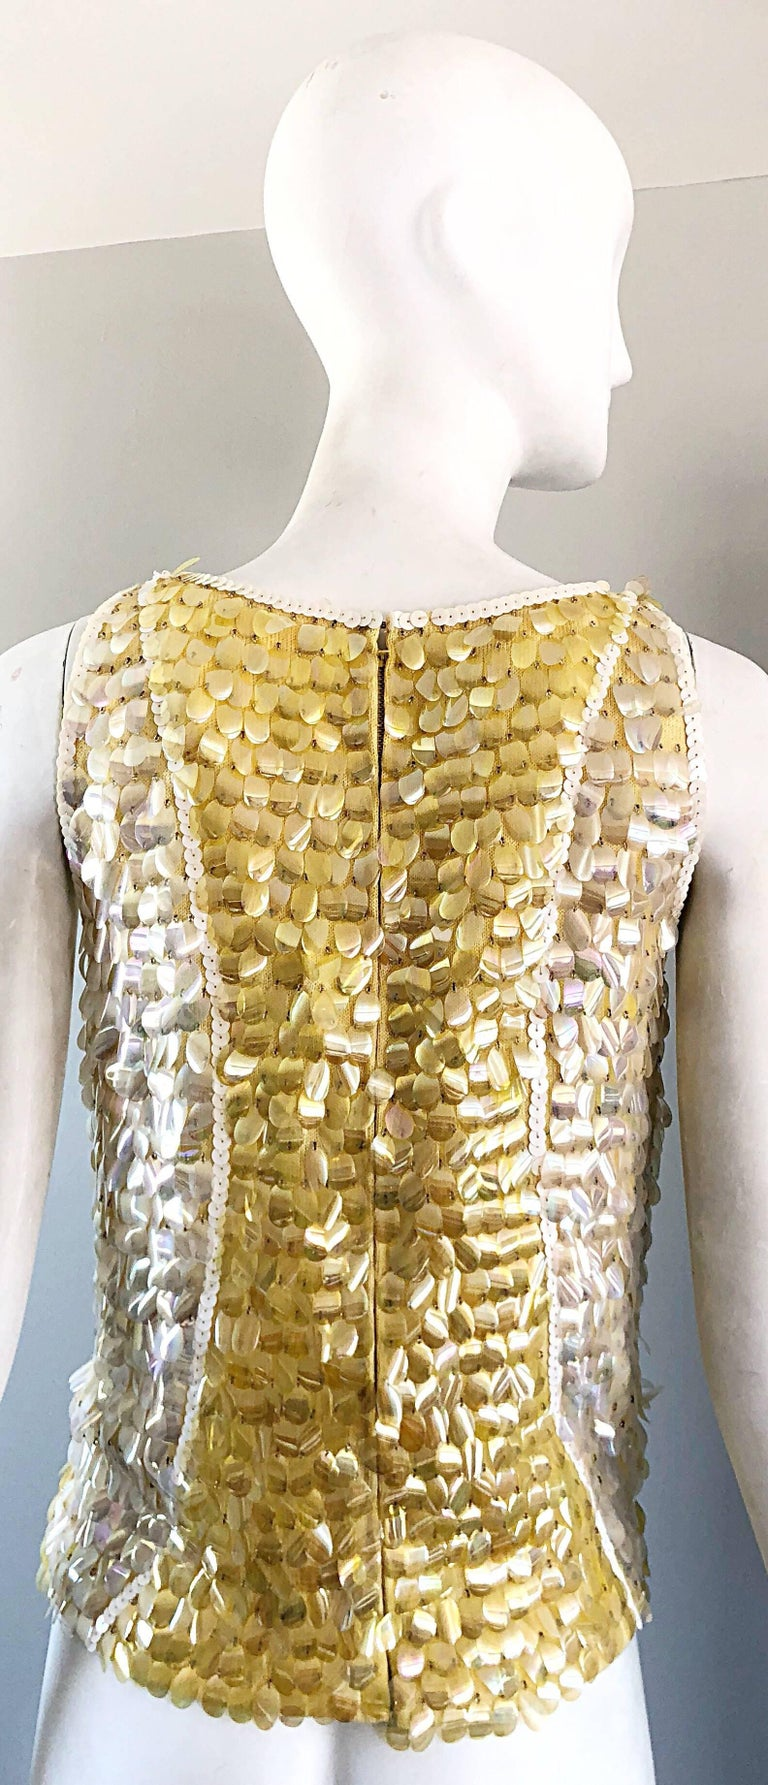 1960s Yellow + White + Clear Paillettes Sequined Lamb's Wool Sleeveless 60s Top In Excellent Condition For Sale In Chicago, IL